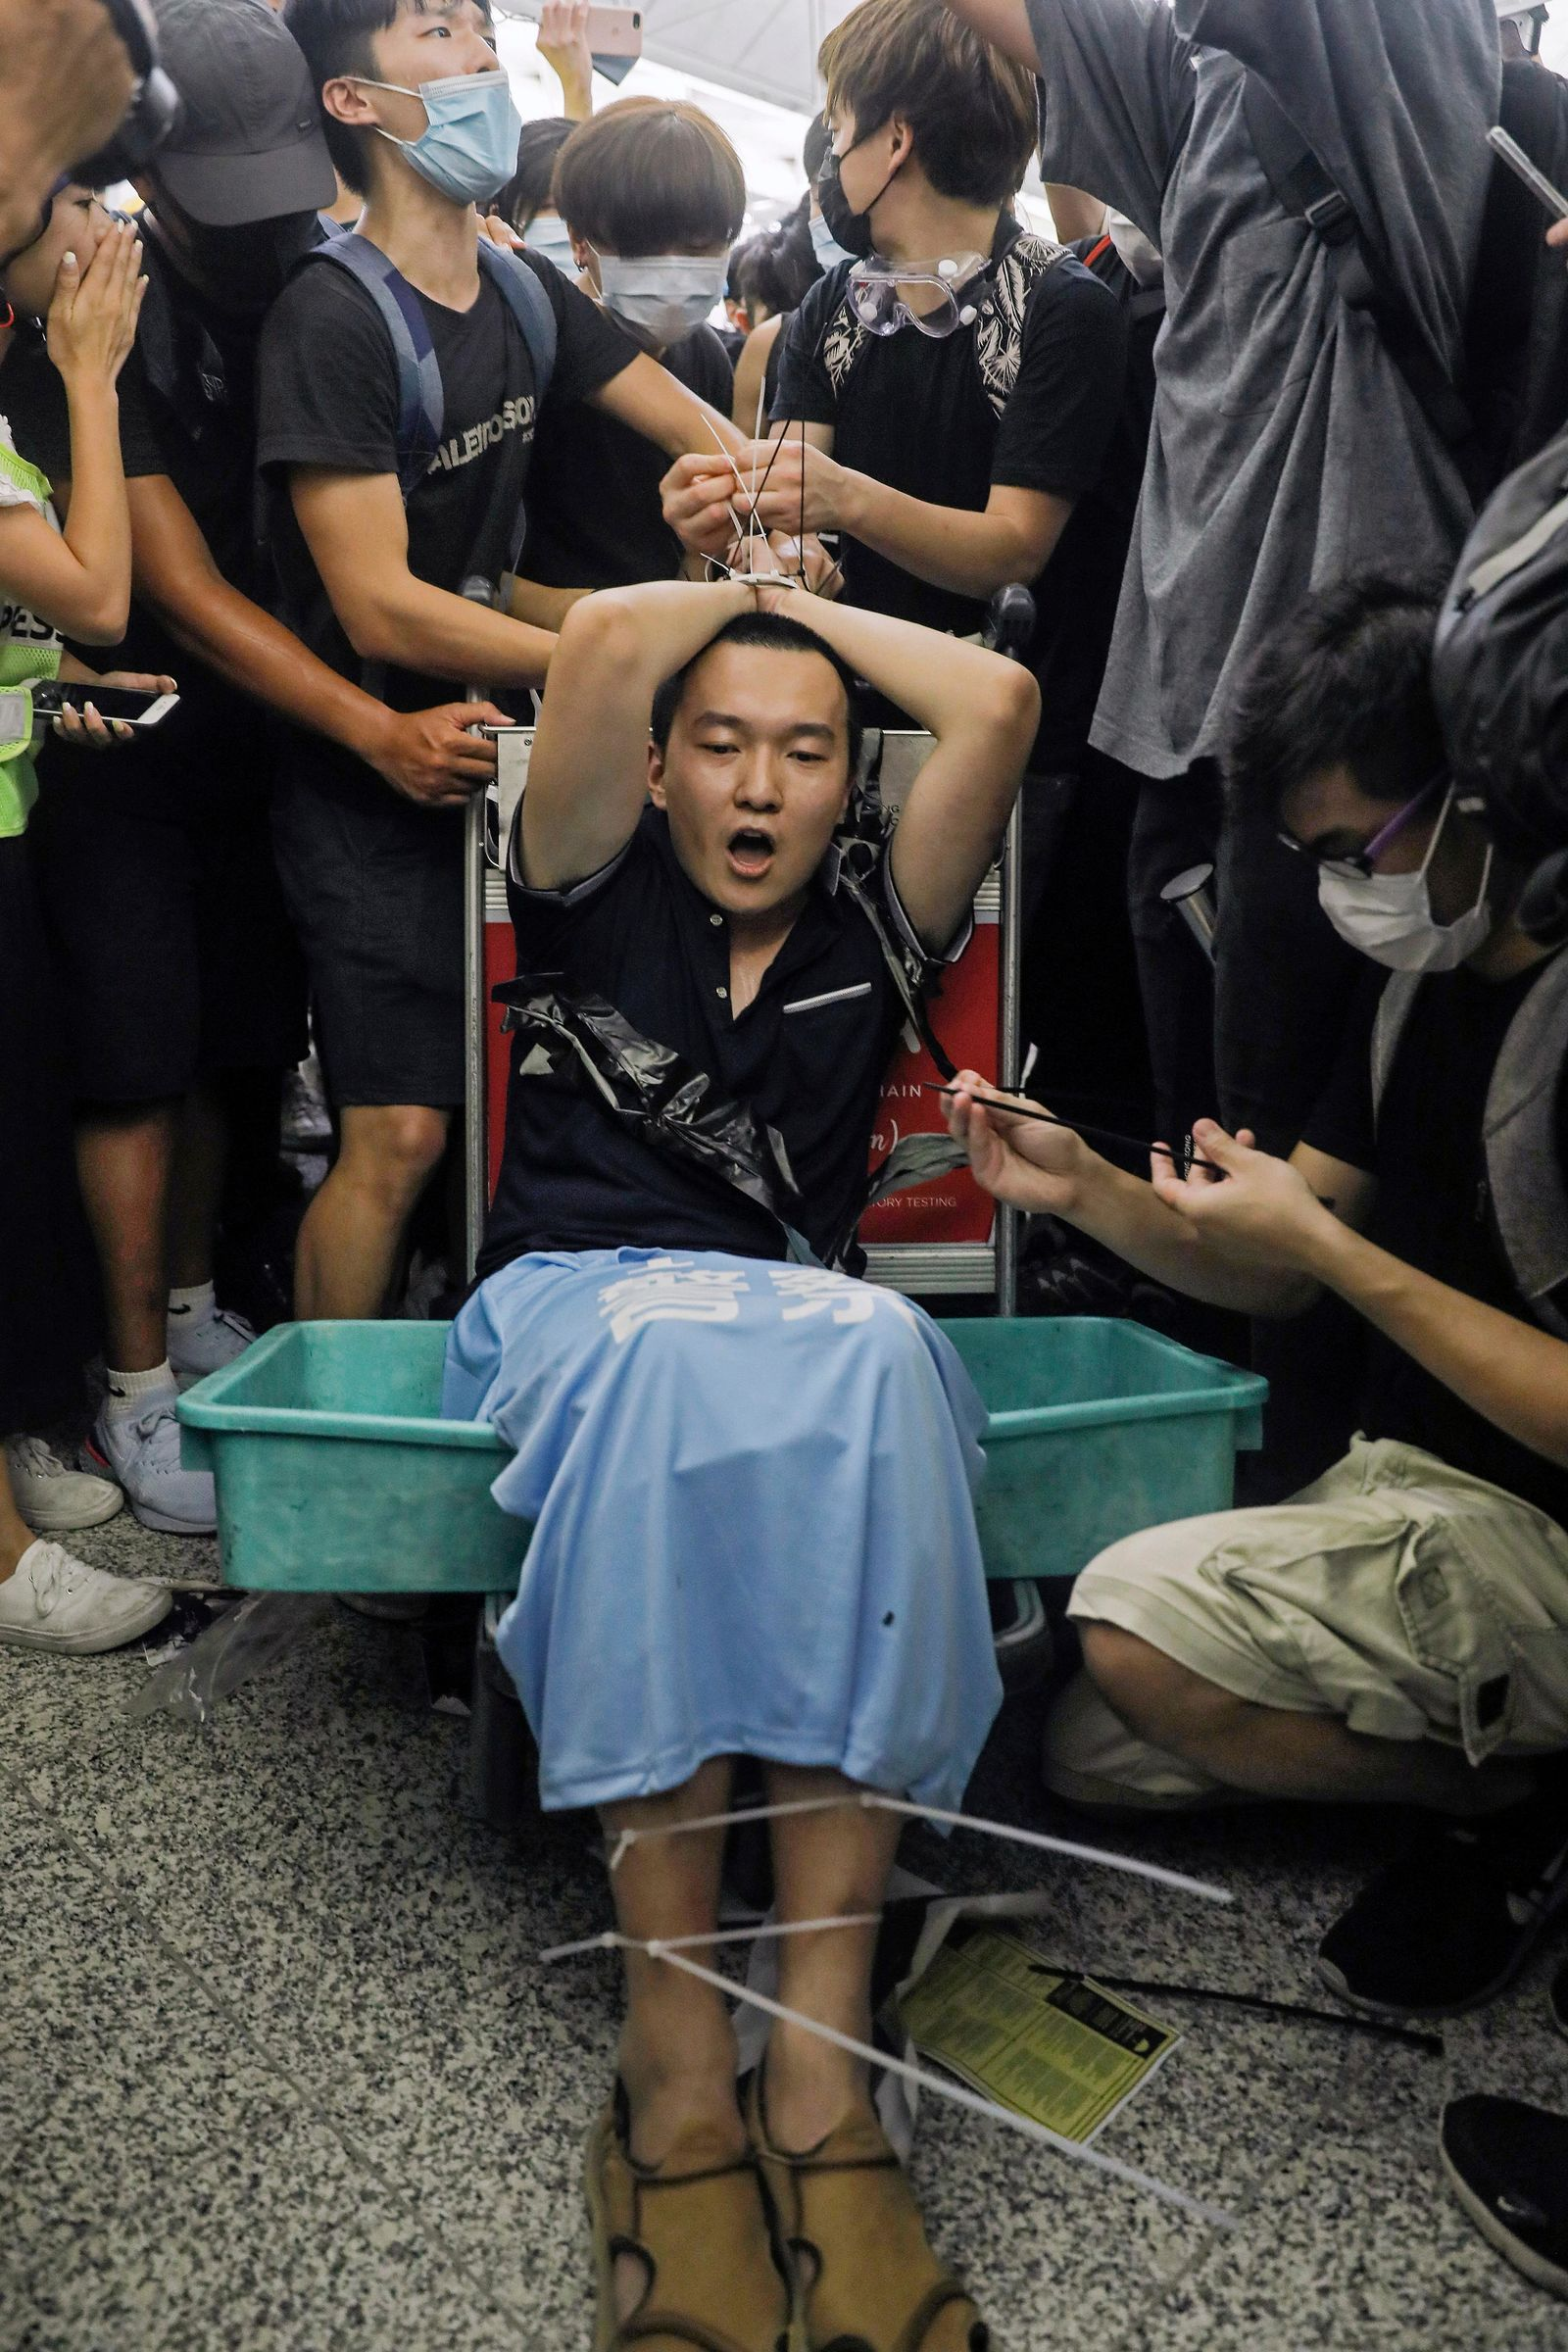 Protesters restrain a man on a luggage trolley, who protesters claimed was a Chinese undercover agent during a demonstration at the Airport in Hong Kong, Tuesday, Aug. 13, 2019. Riot police clashed with pro-democracy protesters at Hong Kong's airport late Tuesday night, a chaotic end to a second day of demonstrations that caused mass flight cancellations at the Chinese city's busy transport hub. (AP Photo/Vincent Yu)